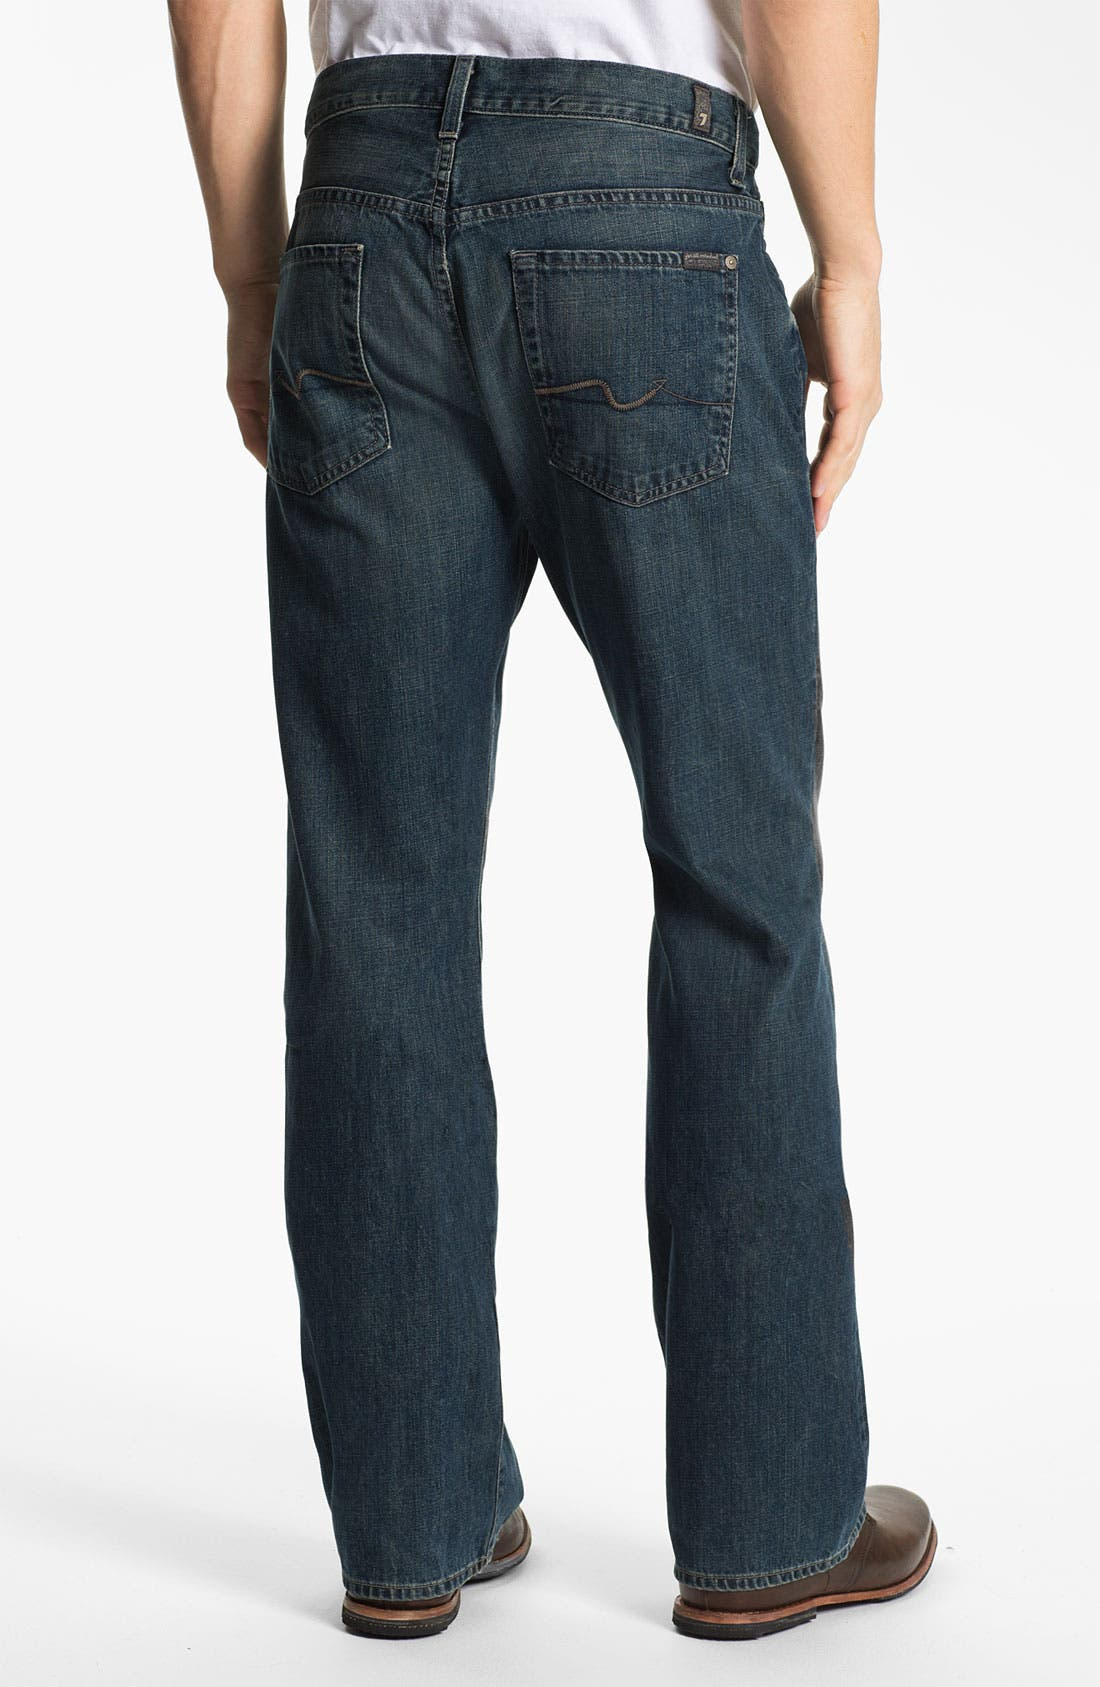 Alternate Image 1 Selected - 7 For All Mankind® 'Brett' Bootcut Jeans (Baring Bay) (Online Exclusive)